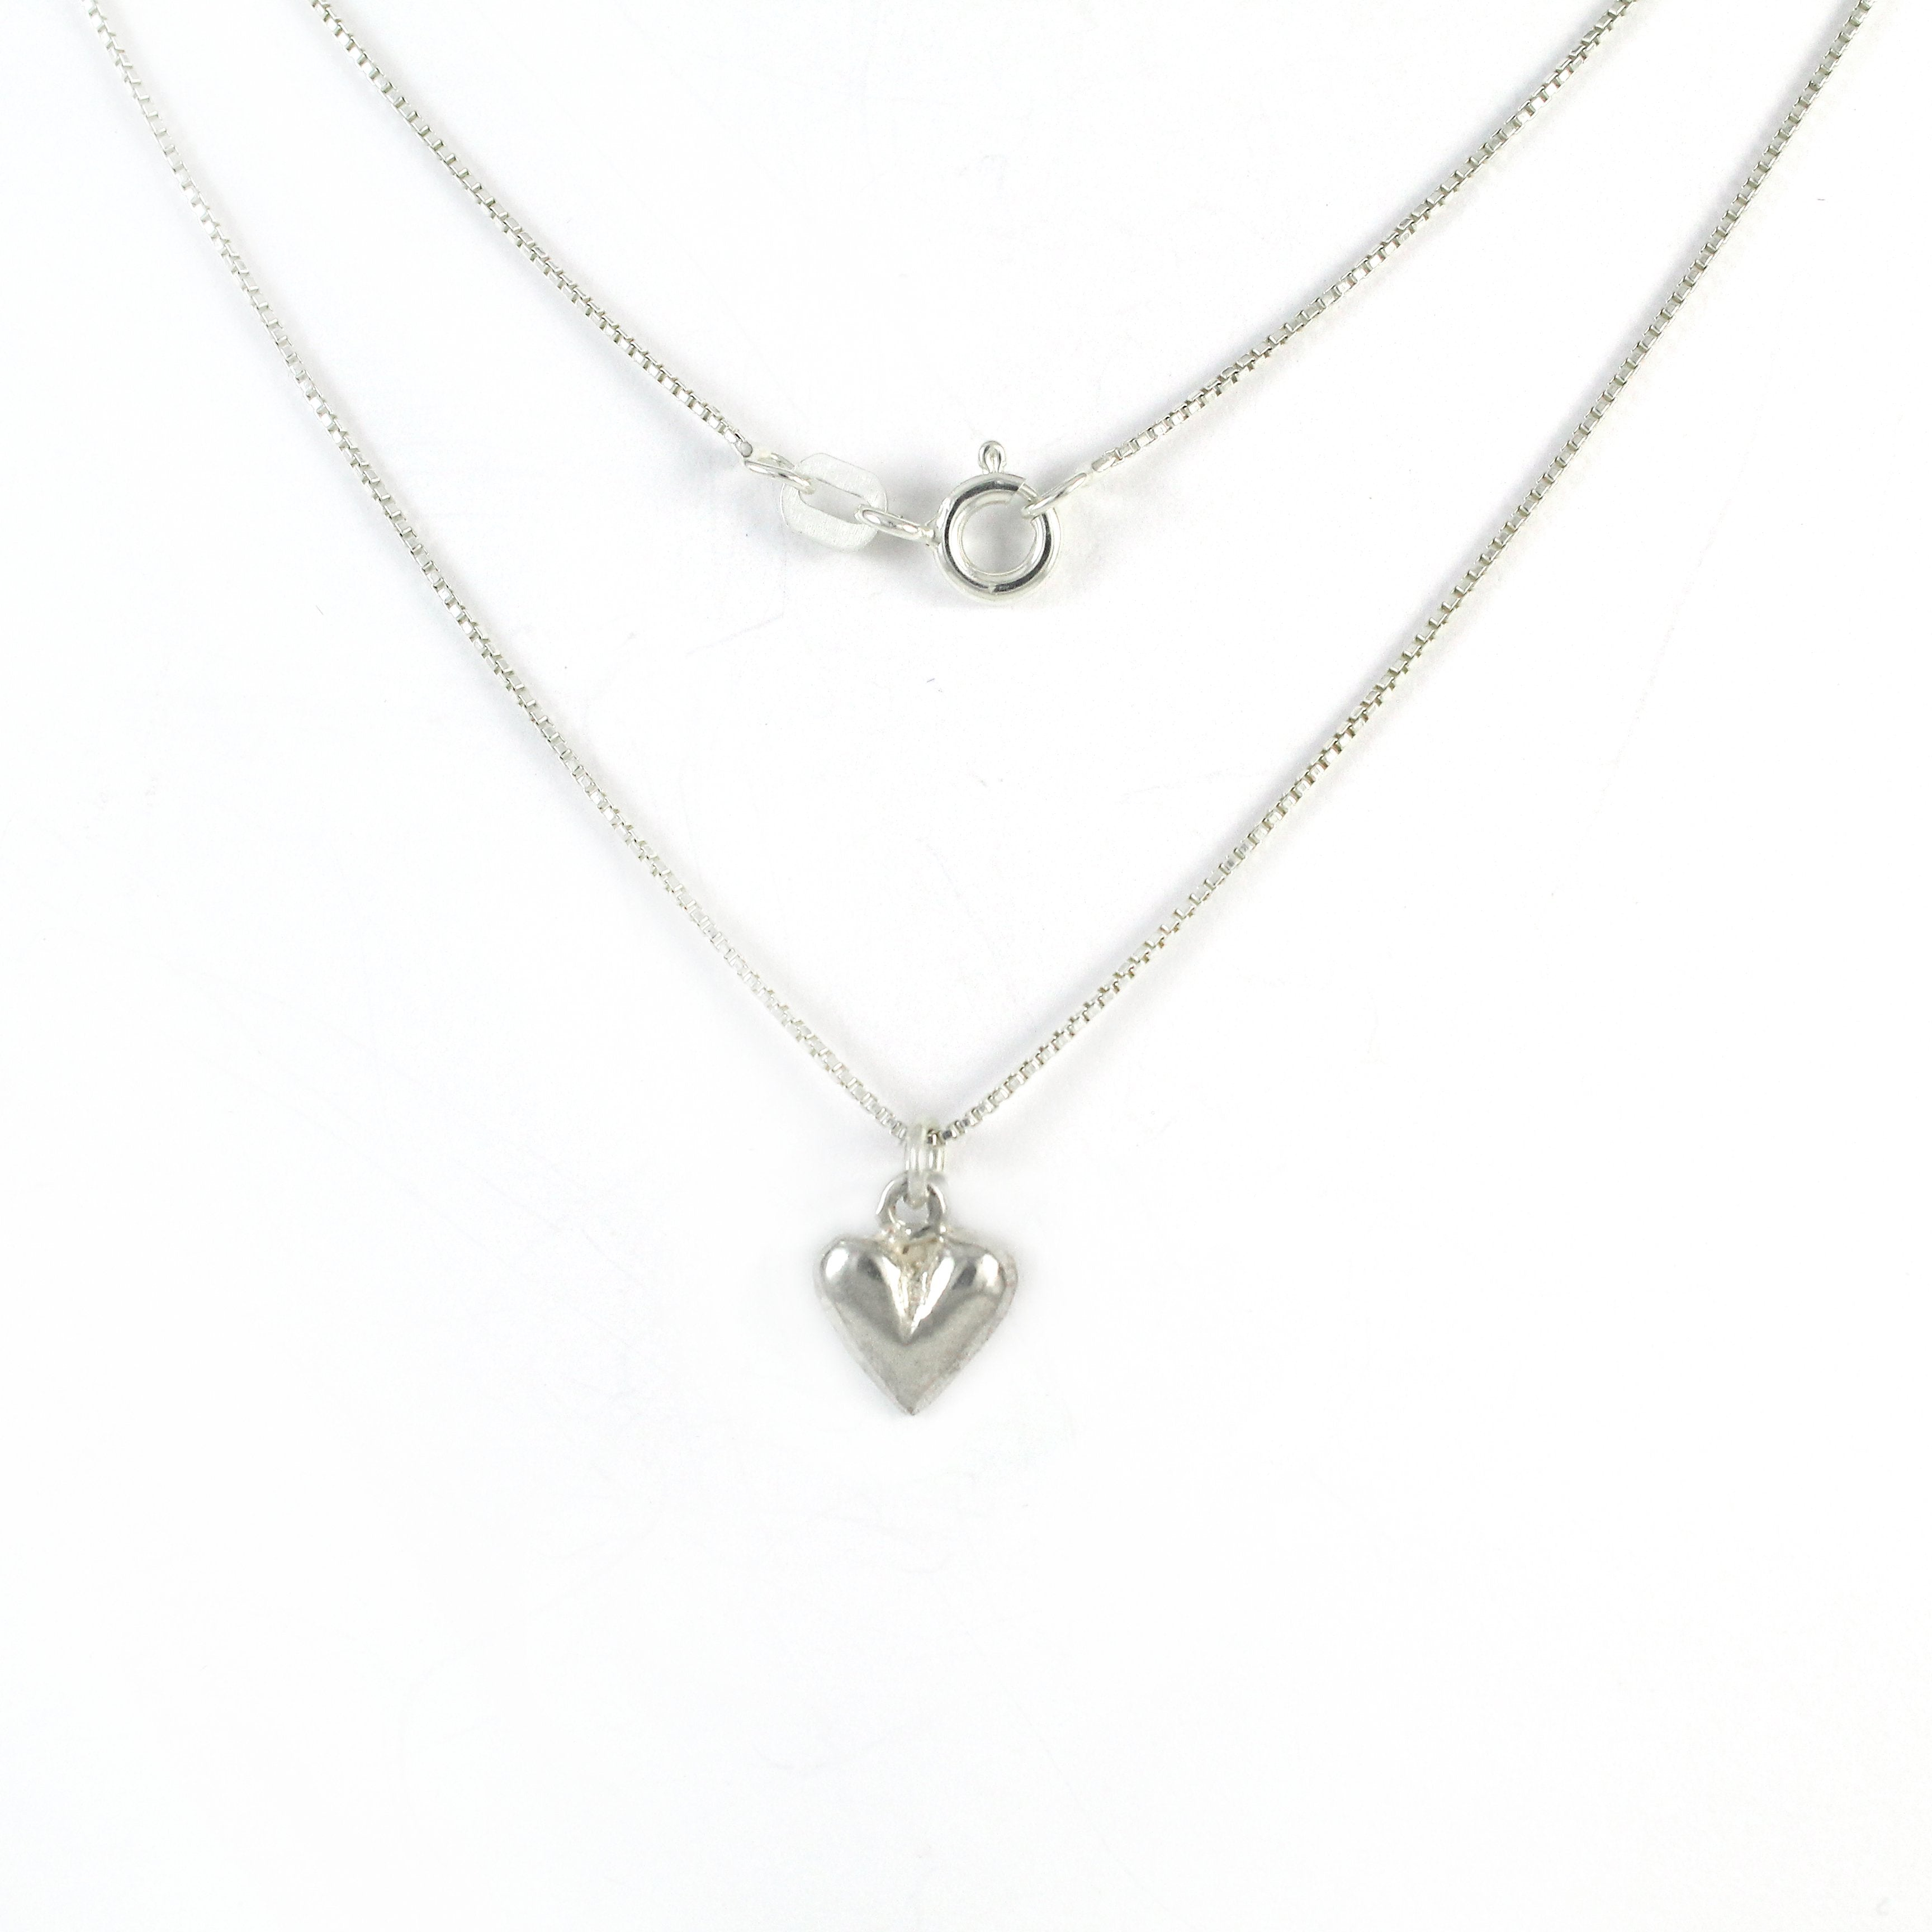 Small Heart Silver Necklace - Shulamit Kanter